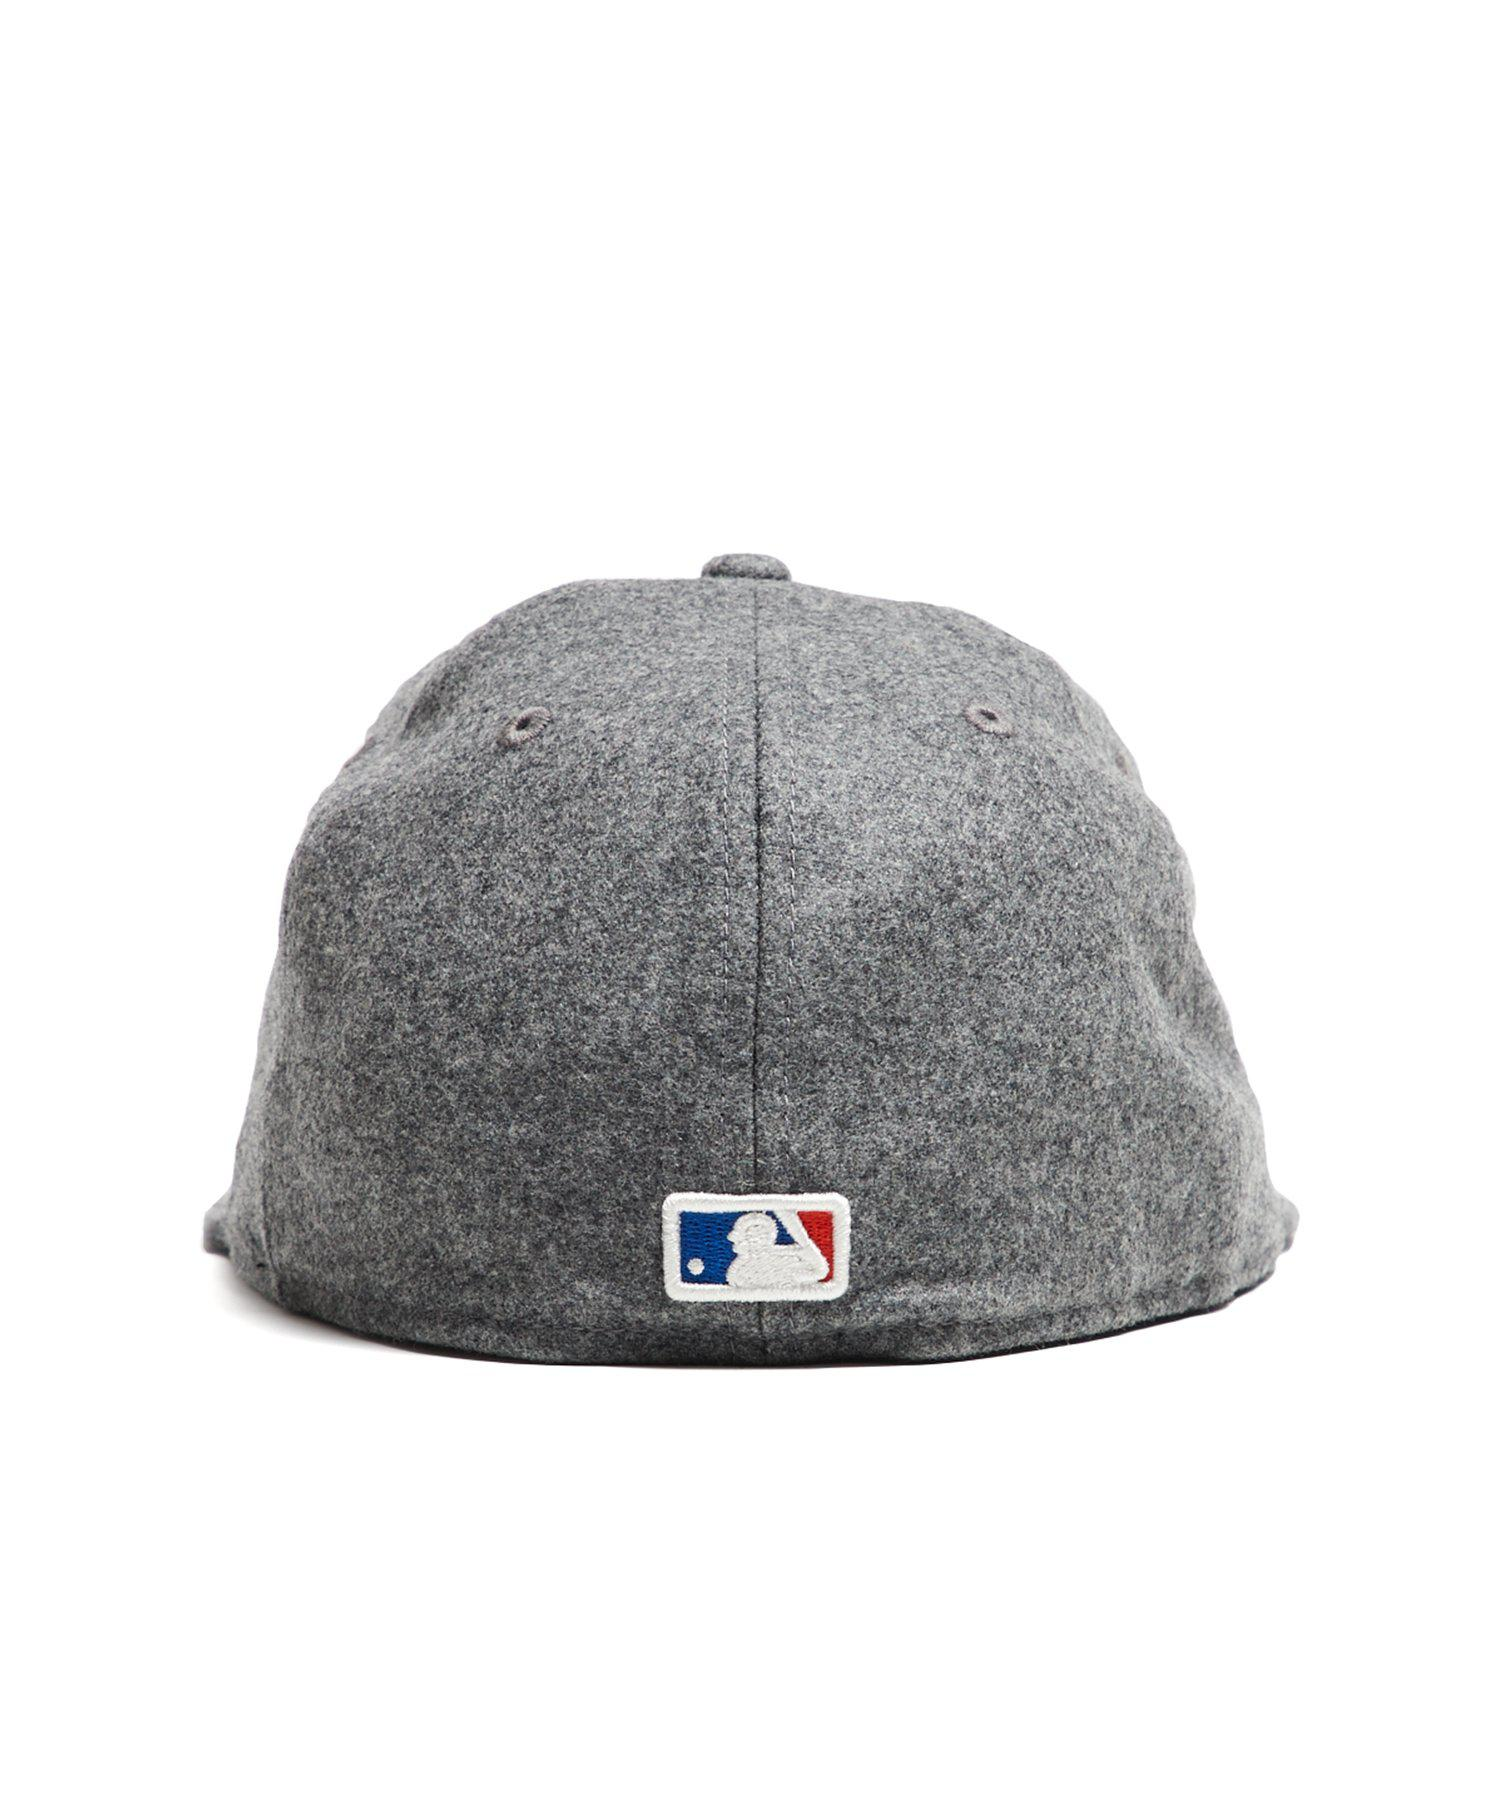 NEW ERA HATS - Gray Exclusive Ny Mets Hat In Italian Barberis Wool Flannel  for Men. View fullscreen 56a55a6e6325